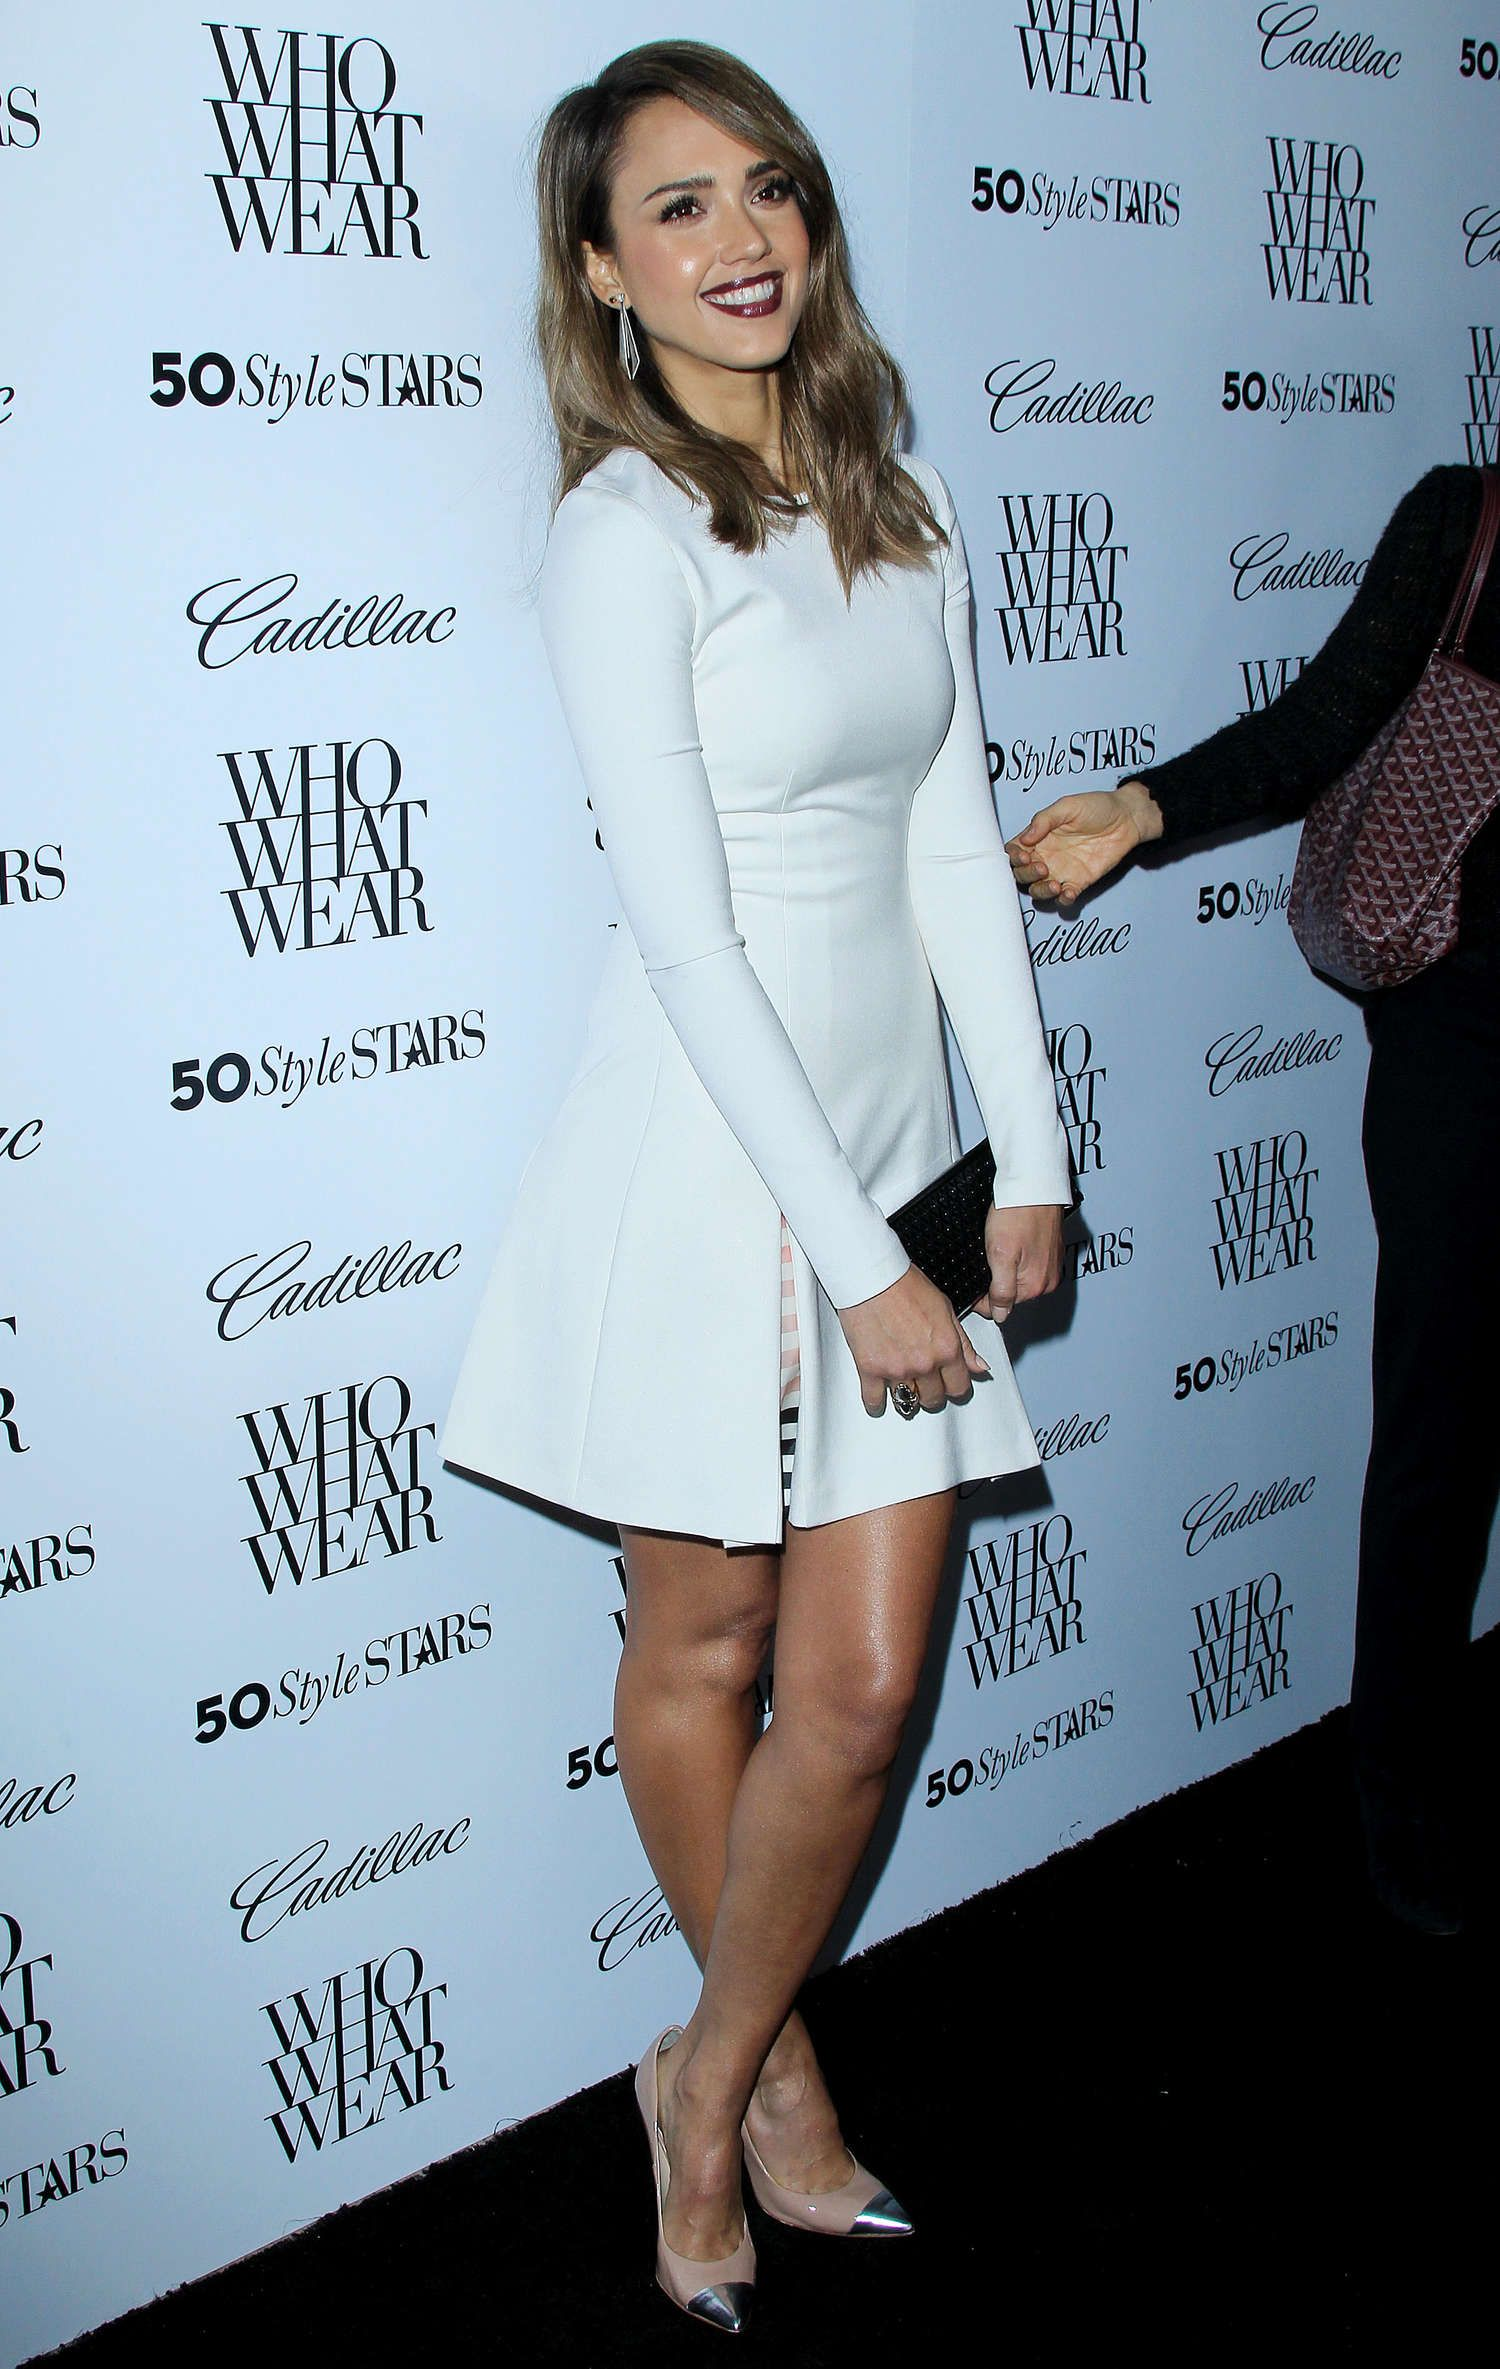 Jessica Alba in White Dress at 50 Most Fashionable Women Of 2013 Event